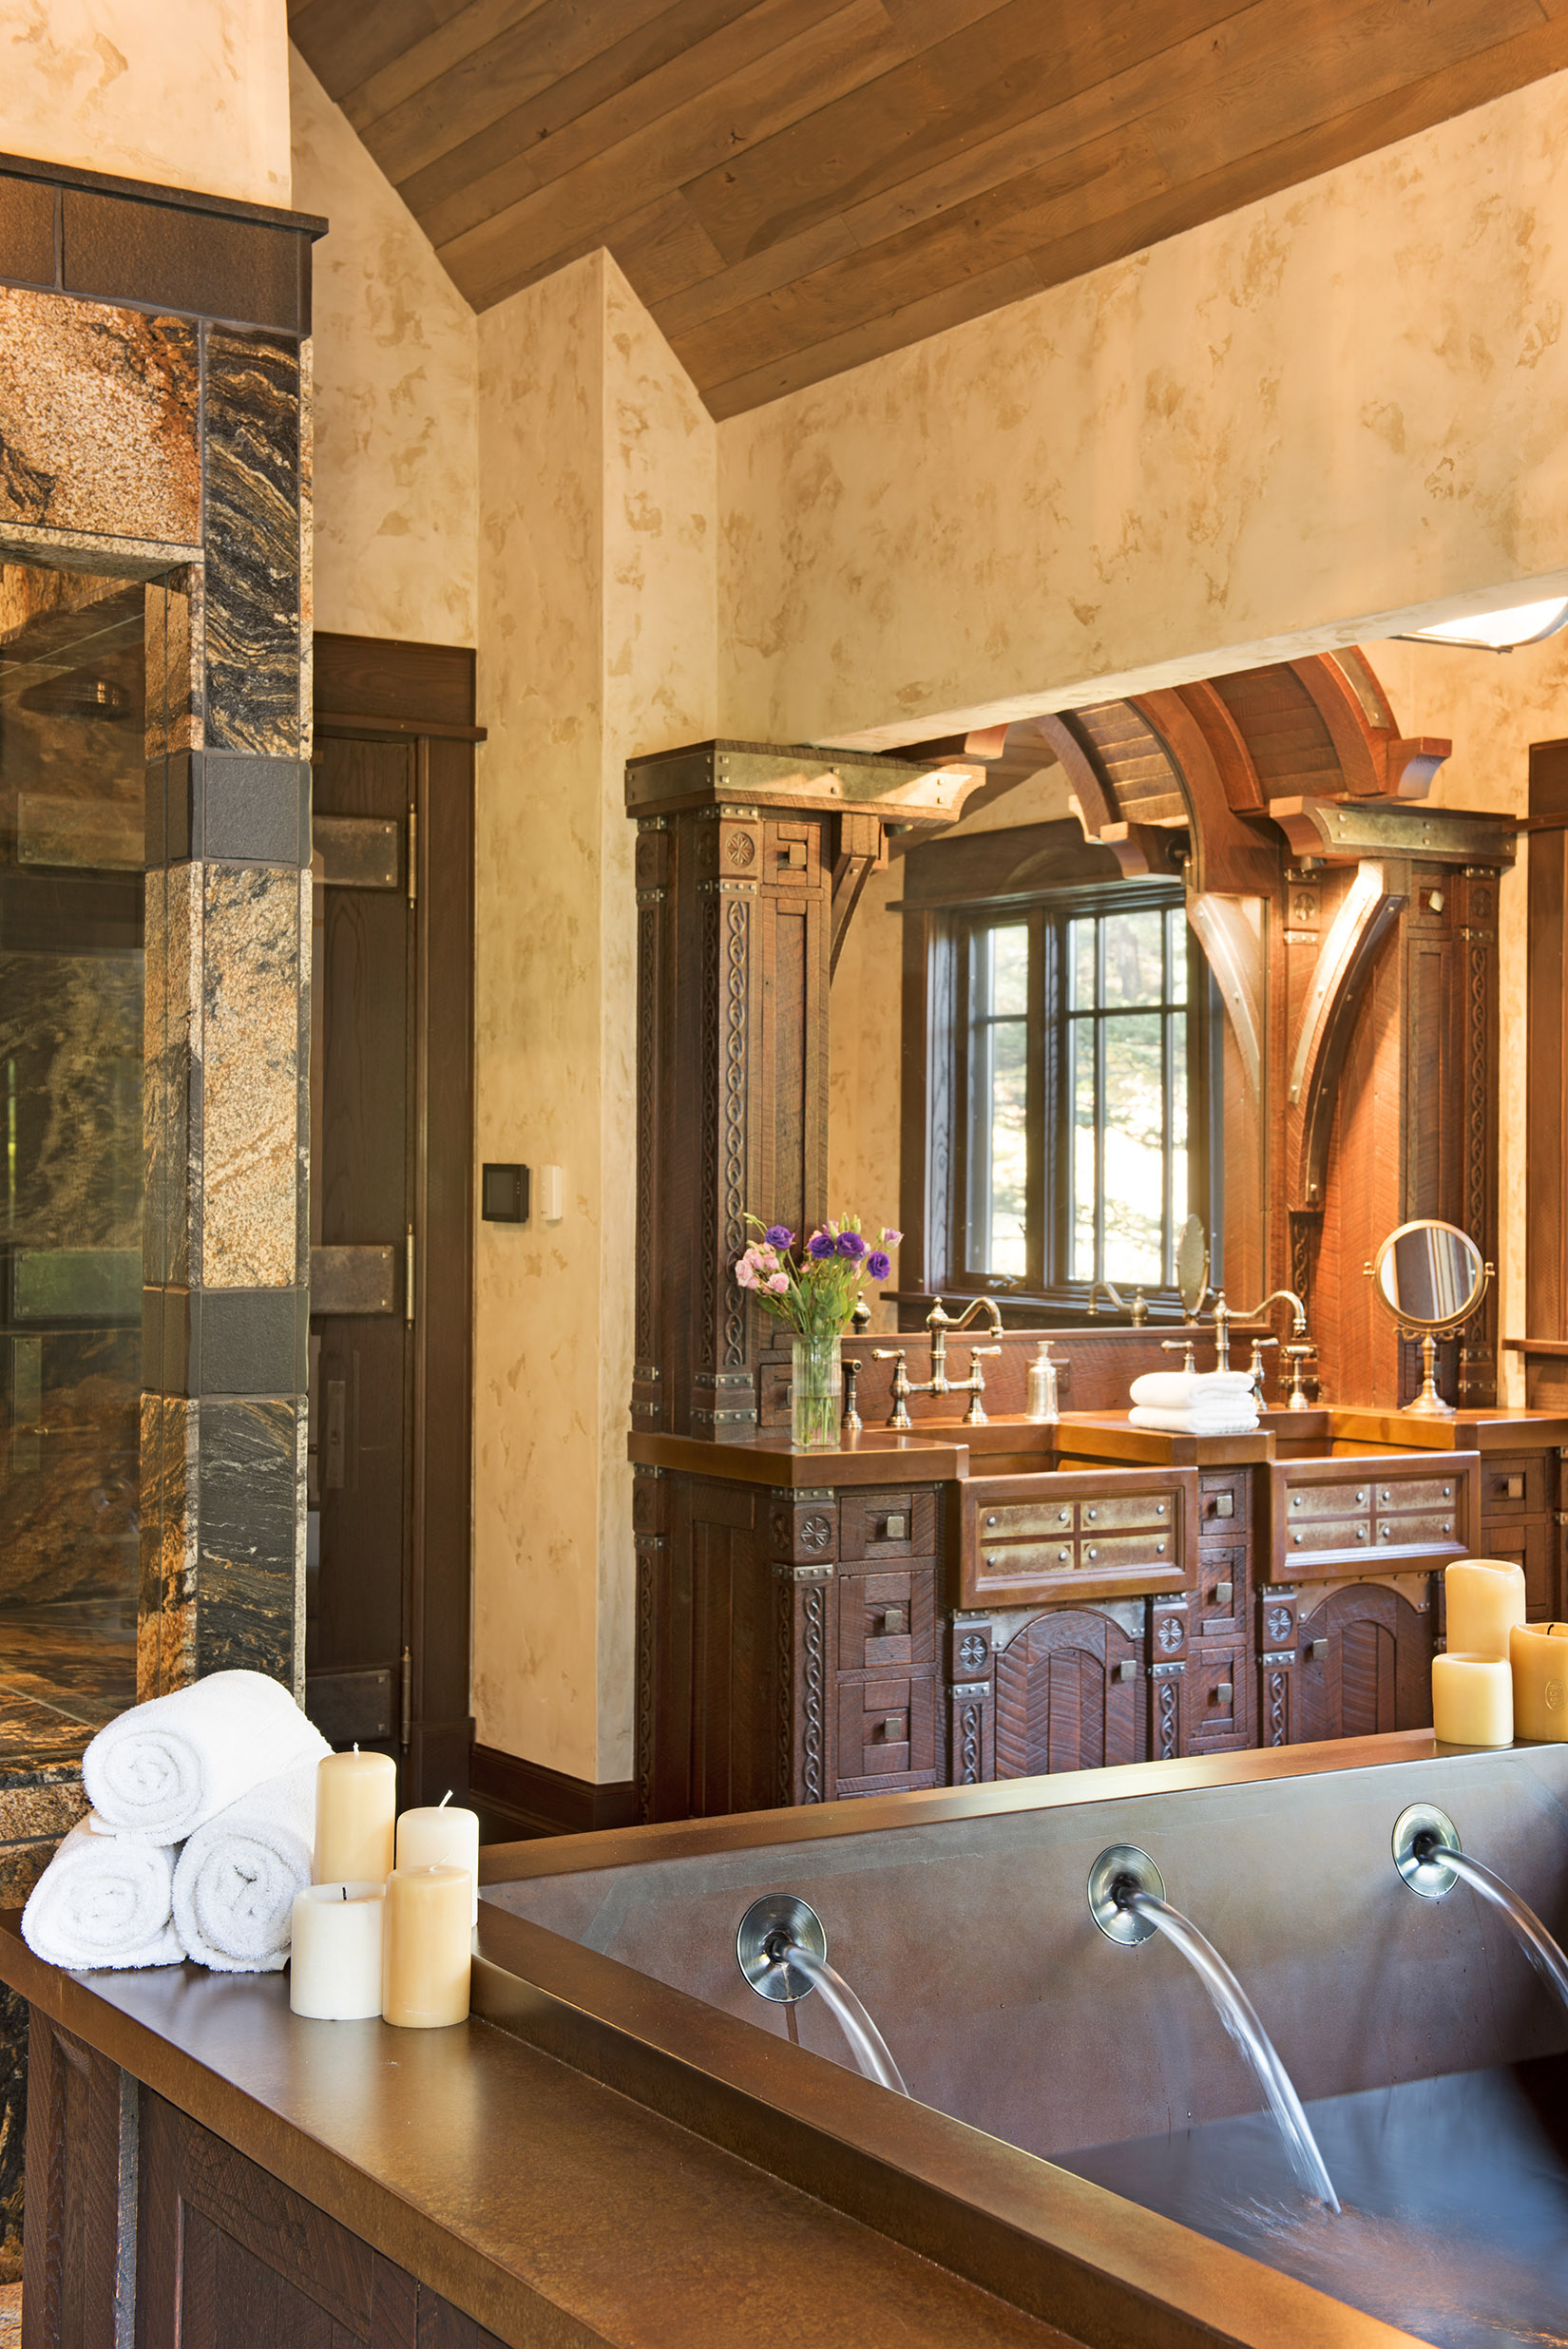 This master bathroom probably deserves a blog post all on it's own - the tub holds 300 gallons and could easily fit 6 people.